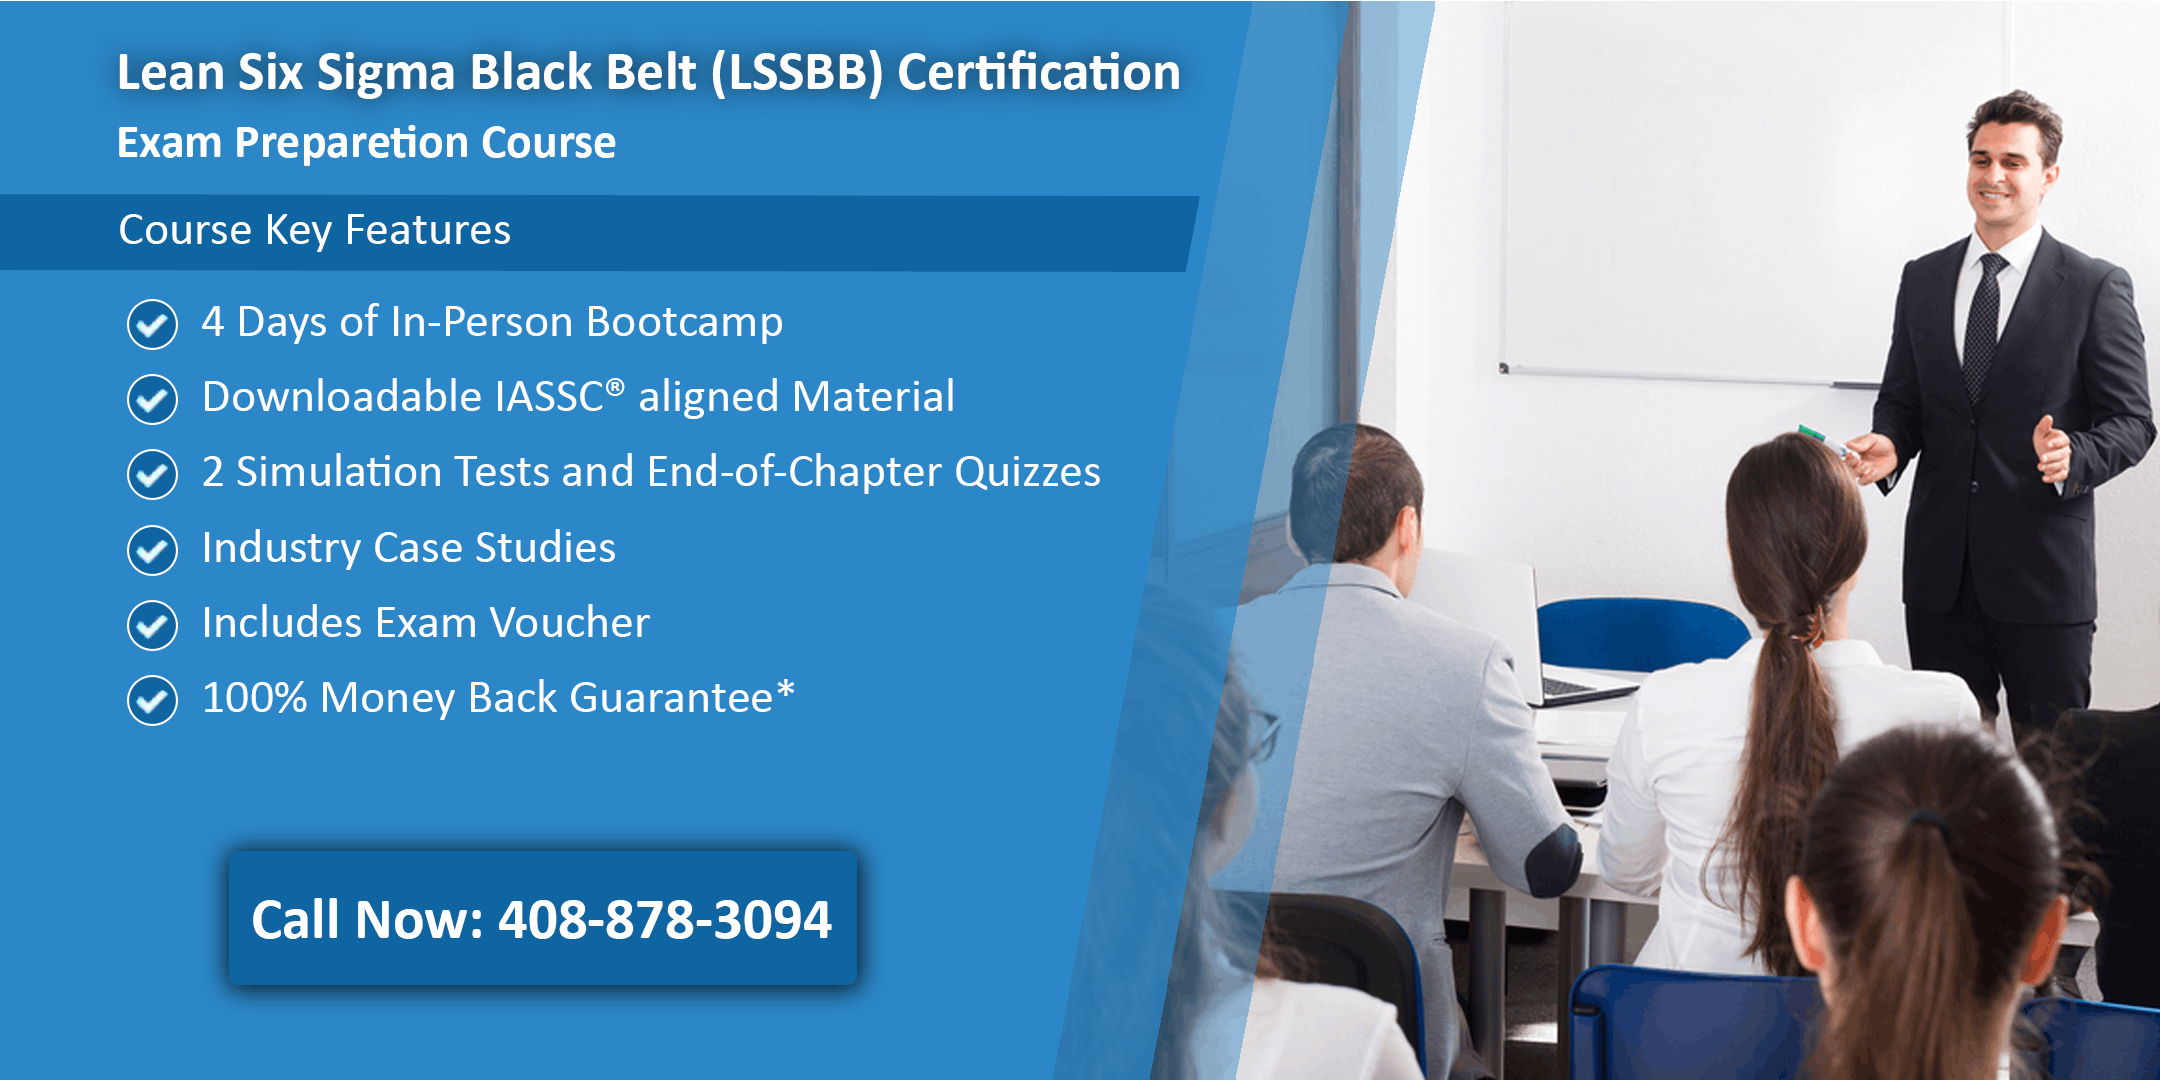 Lean Six Sigma Black Belt (LSSBB) Certification Training In Denver, CO